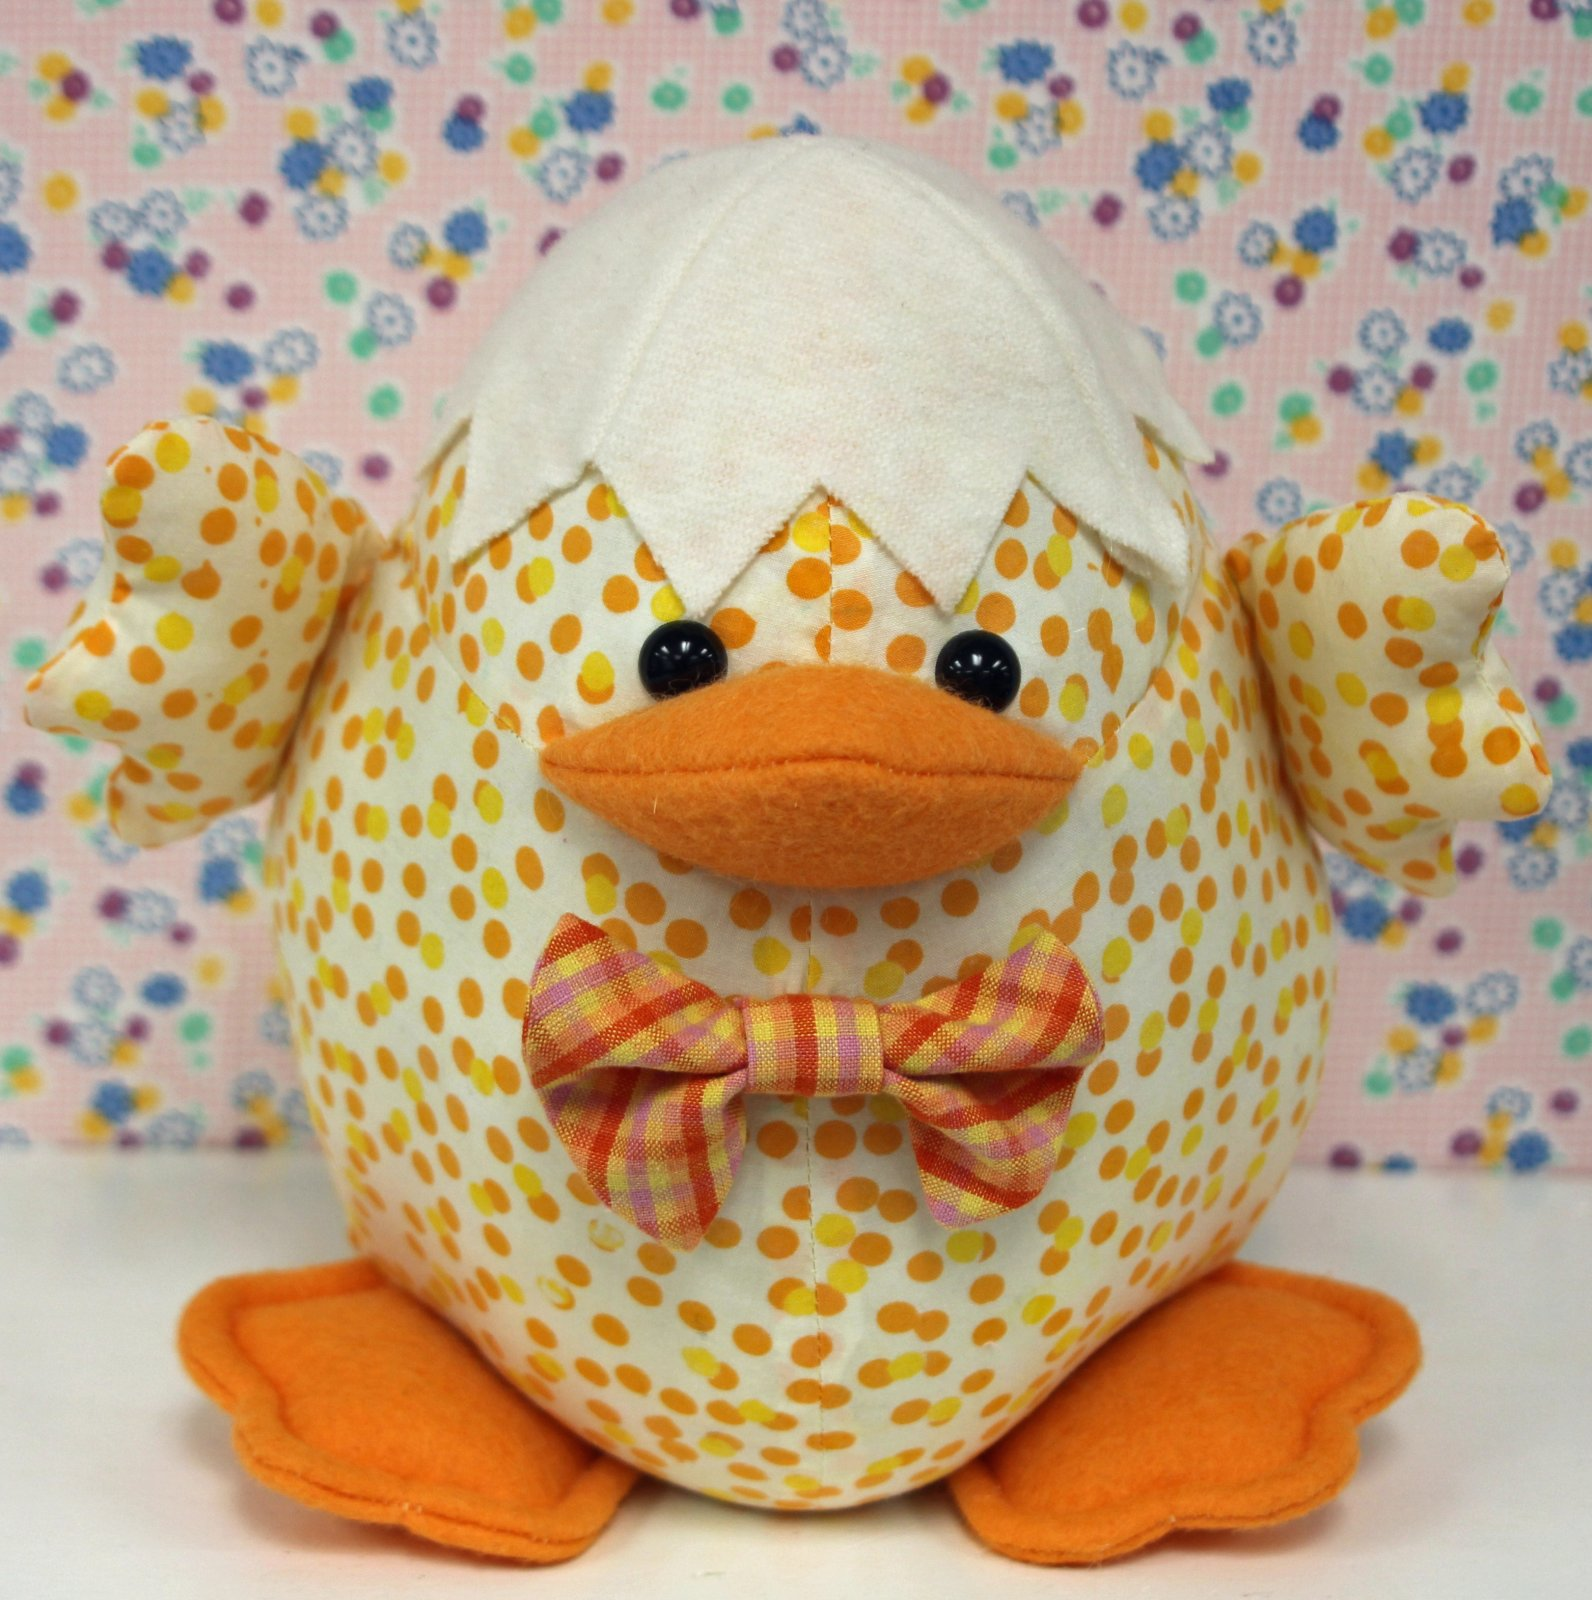 Egghead the Easter Chick